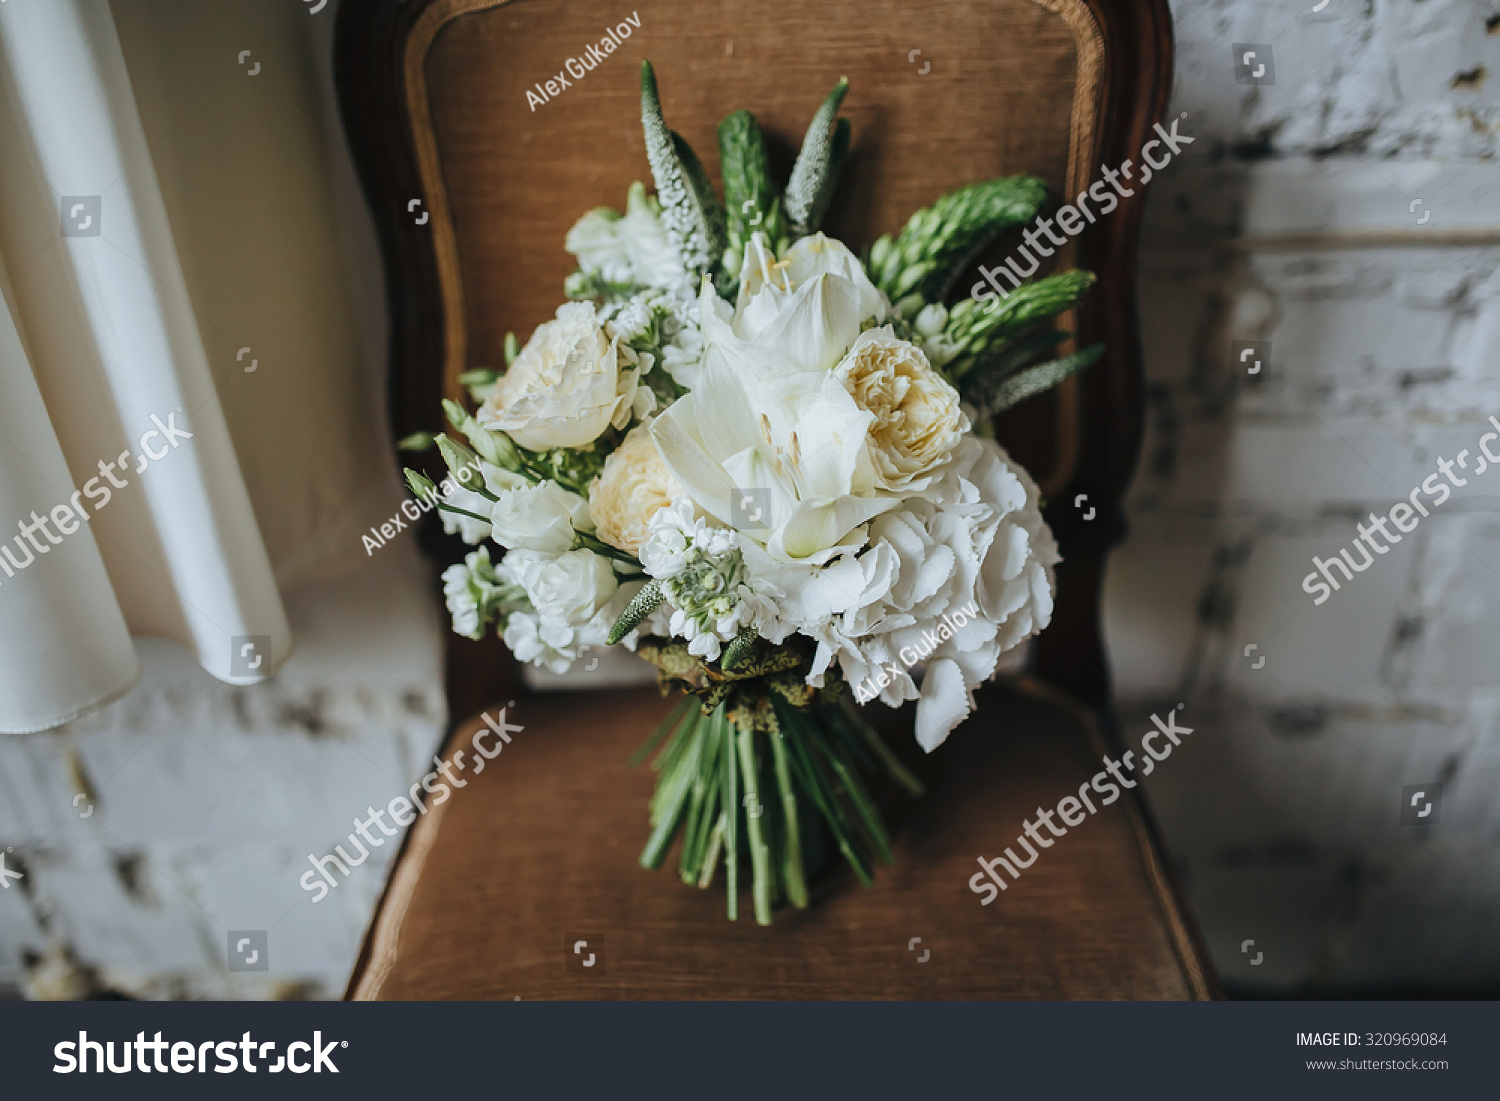 Bridal bouquet white flowers greenery on stock photo edit now bridal bouquet of white flowers and greenery is on a vintage chair against a white brick izmirmasajfo